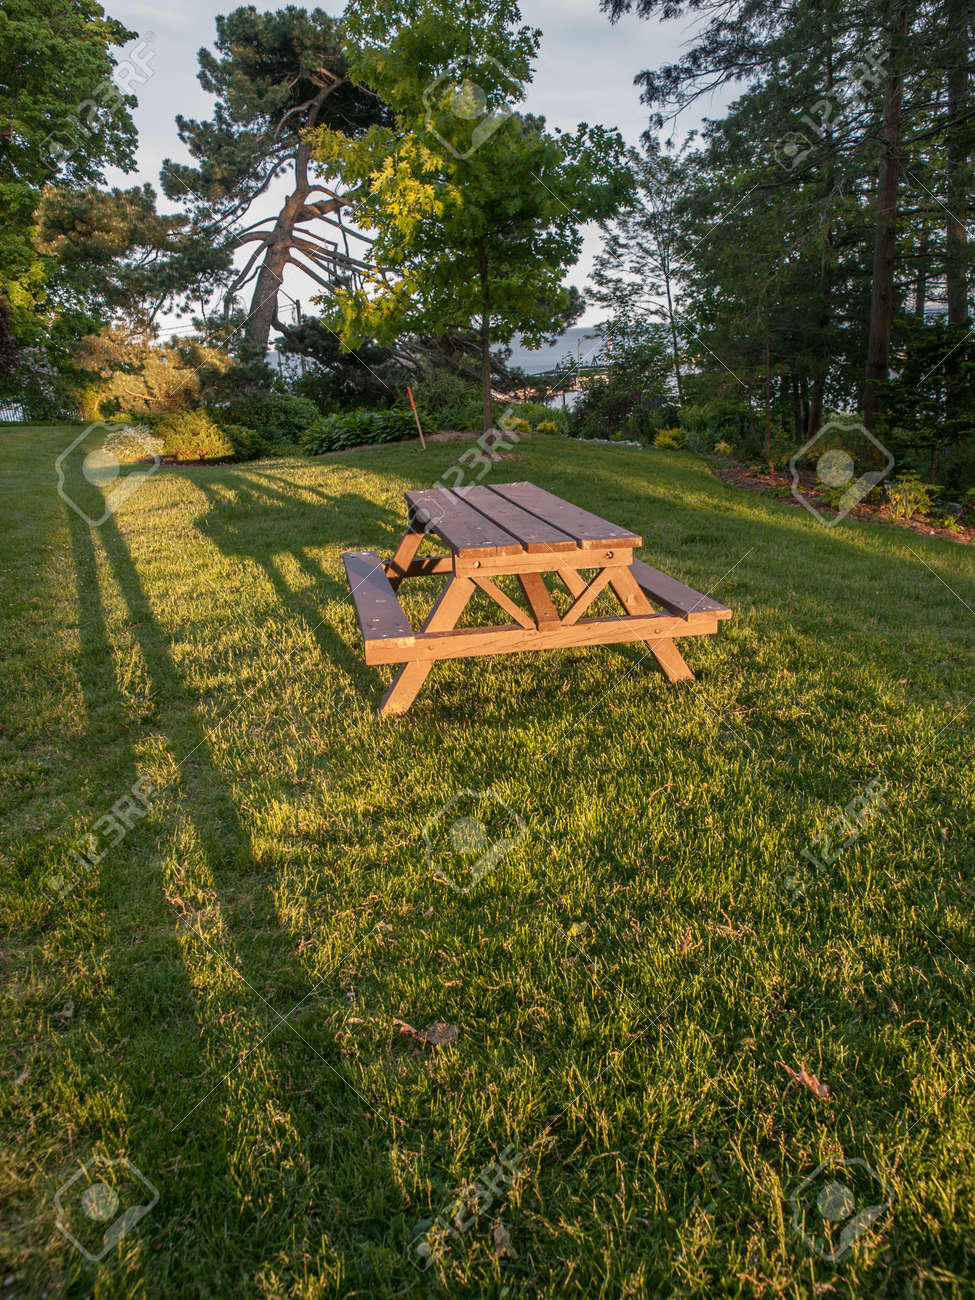 Tavolo Oakville Ontario Picnic Table At Sunset With Long Shadows On Green Grass In A